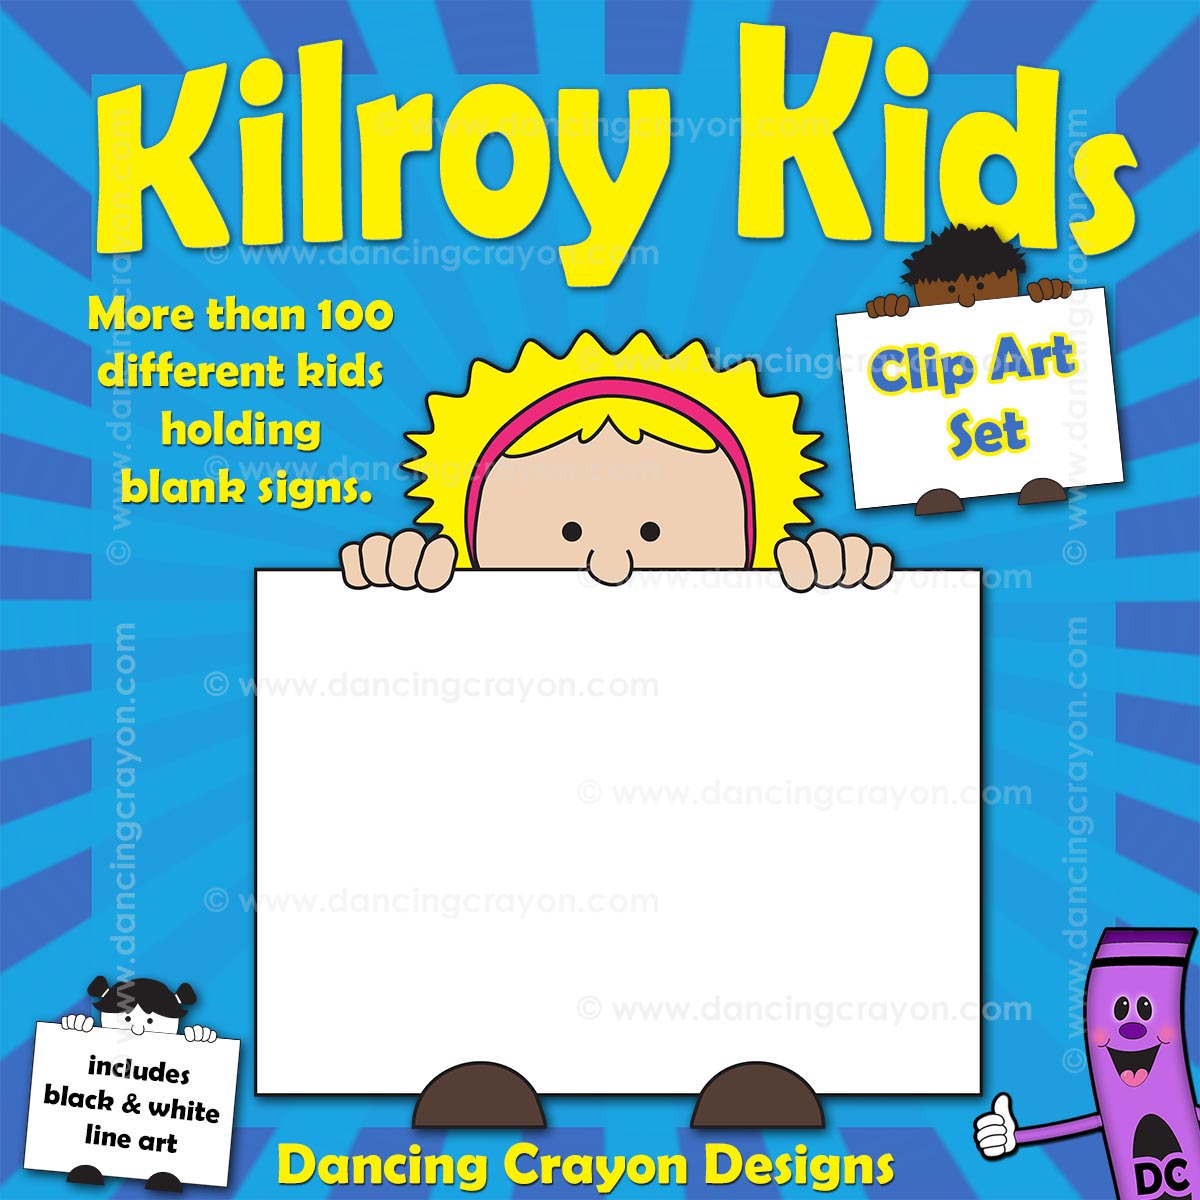 Free clipart: Kilroy style kid holding sign.